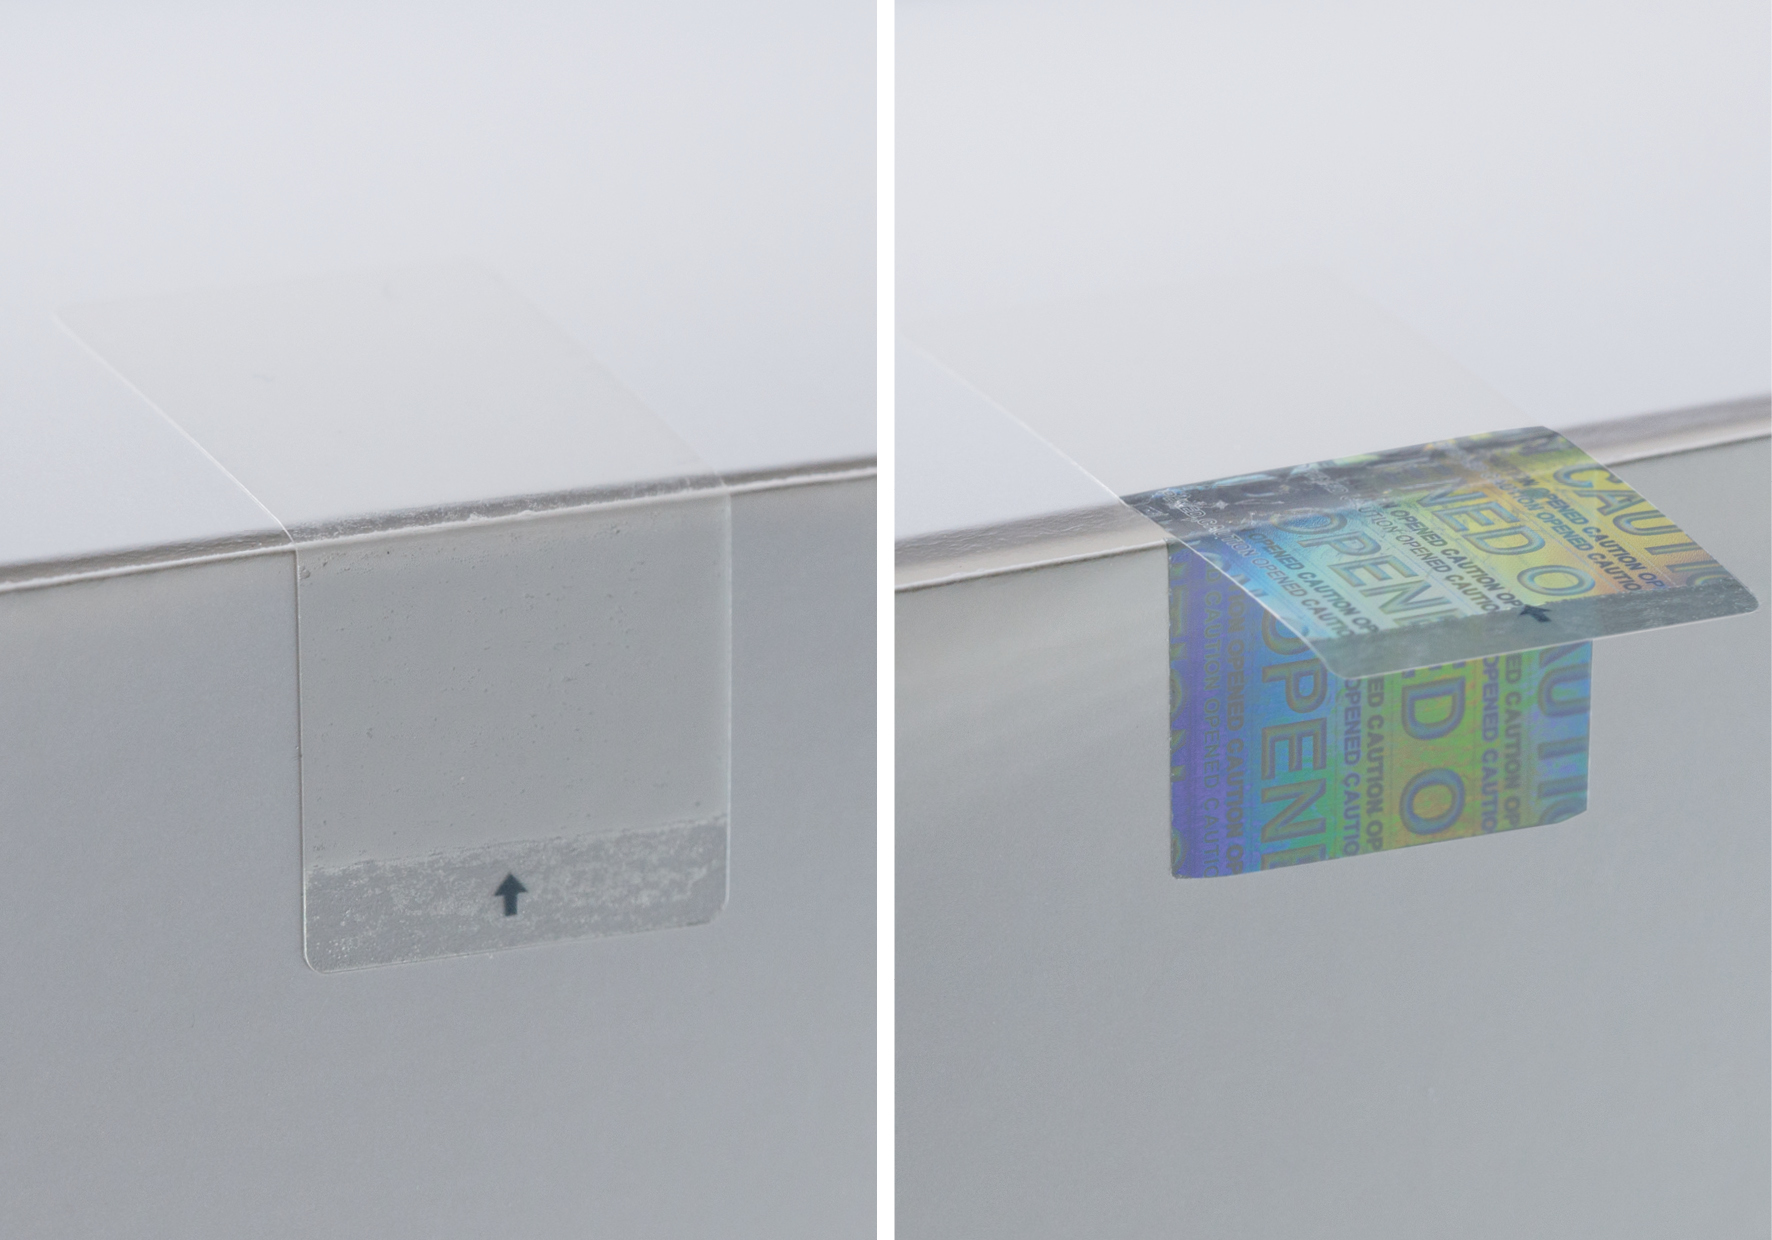 Covert-Hologram Seal from Schreiner MediPharm Offers Tamper Protection Conforming to EU Directive